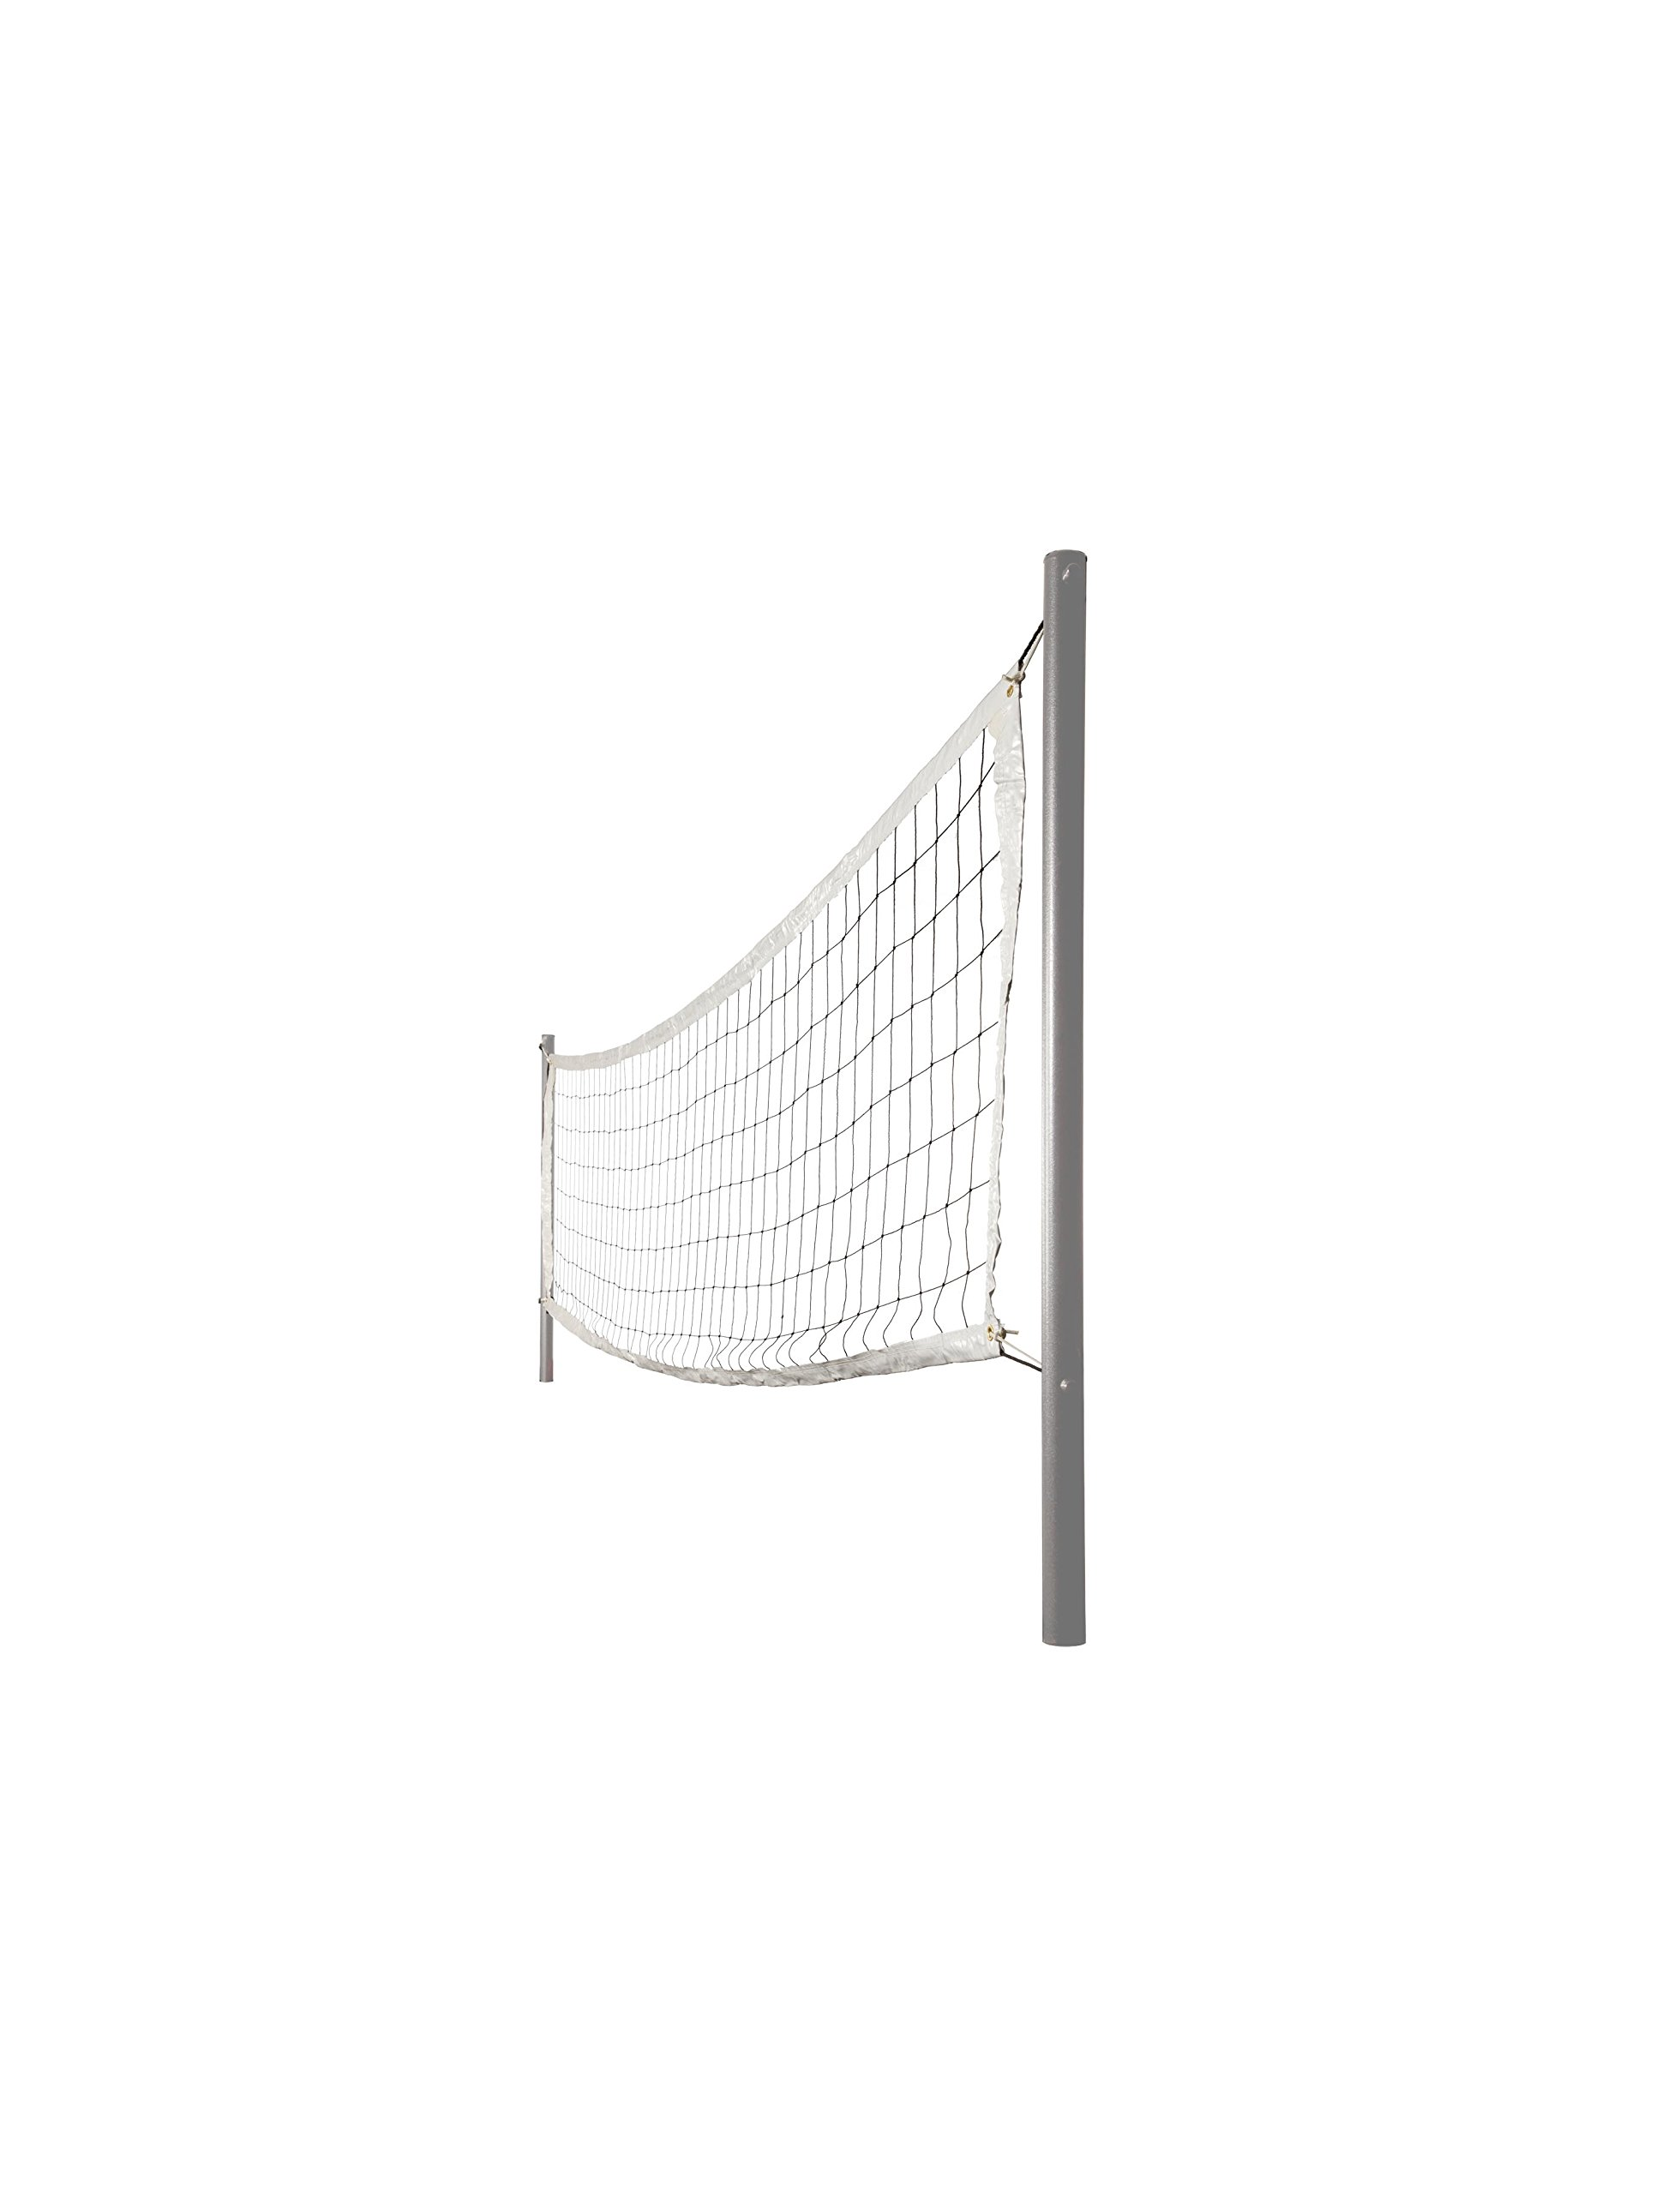 S.R. Smith VOLY Swim N Spike Complete Vollyball Game Kit with 16-Feet Net and Anchors, 3-Box